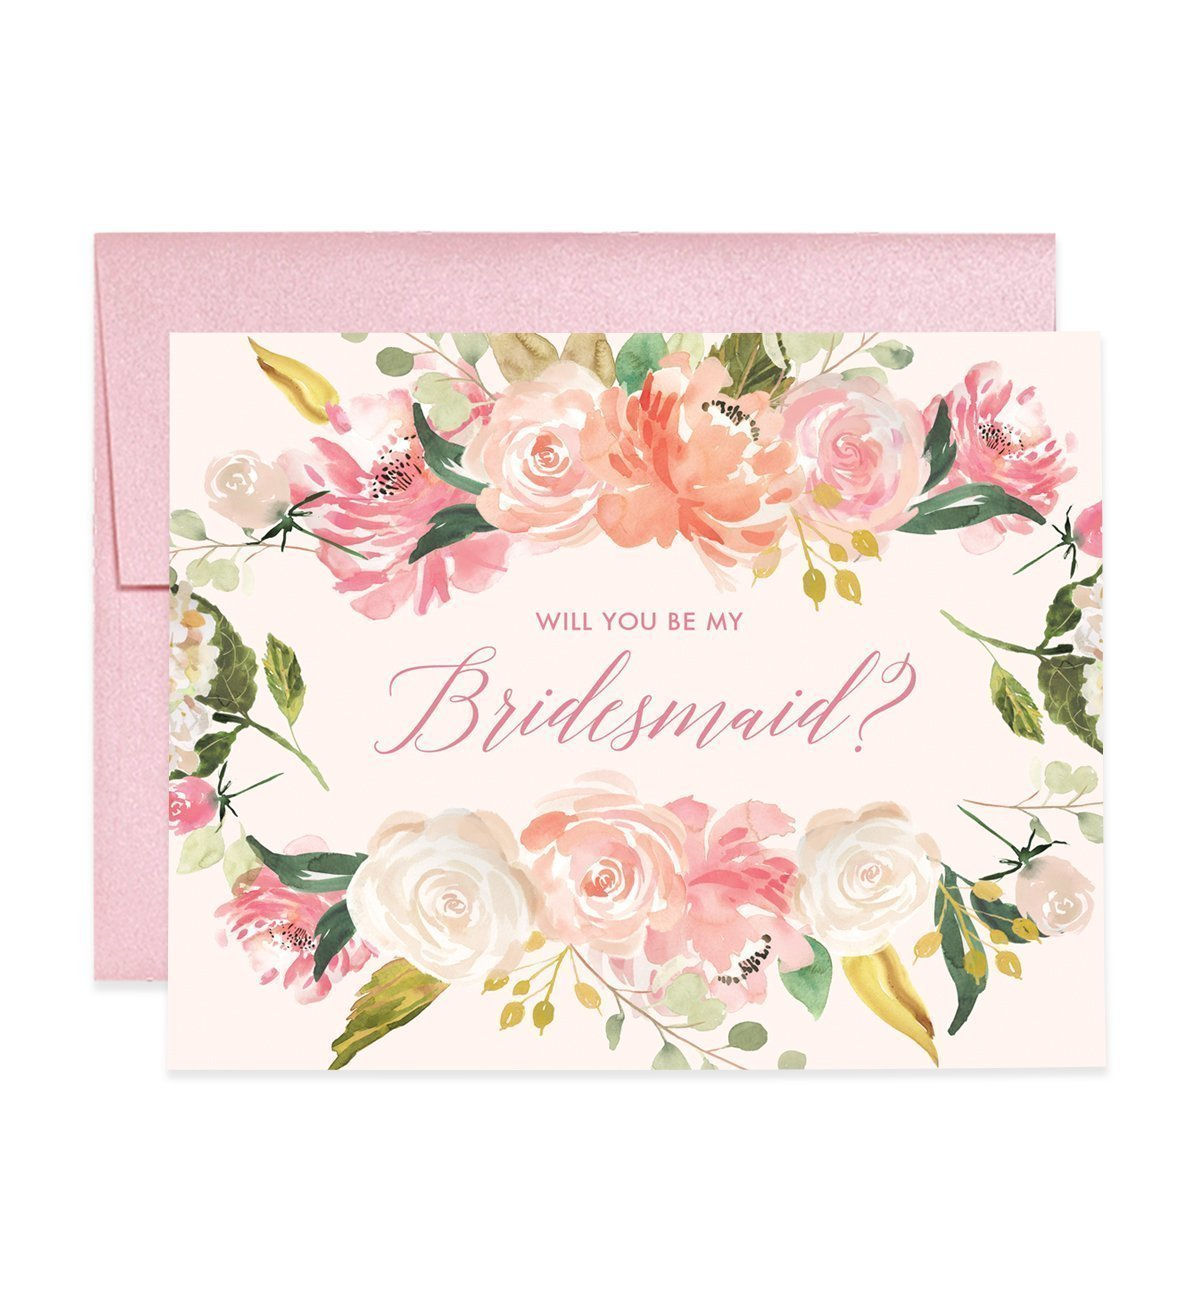 Pretty Blush Pink Bridesmaid Proposal Cards Will You Be My Brides Maid Box Pack (Set of 5) Floral Watercolor Five Engagement Wedding Bridal Party Cards Light Pink Shimmer Metallic Envelopes CW0003-1